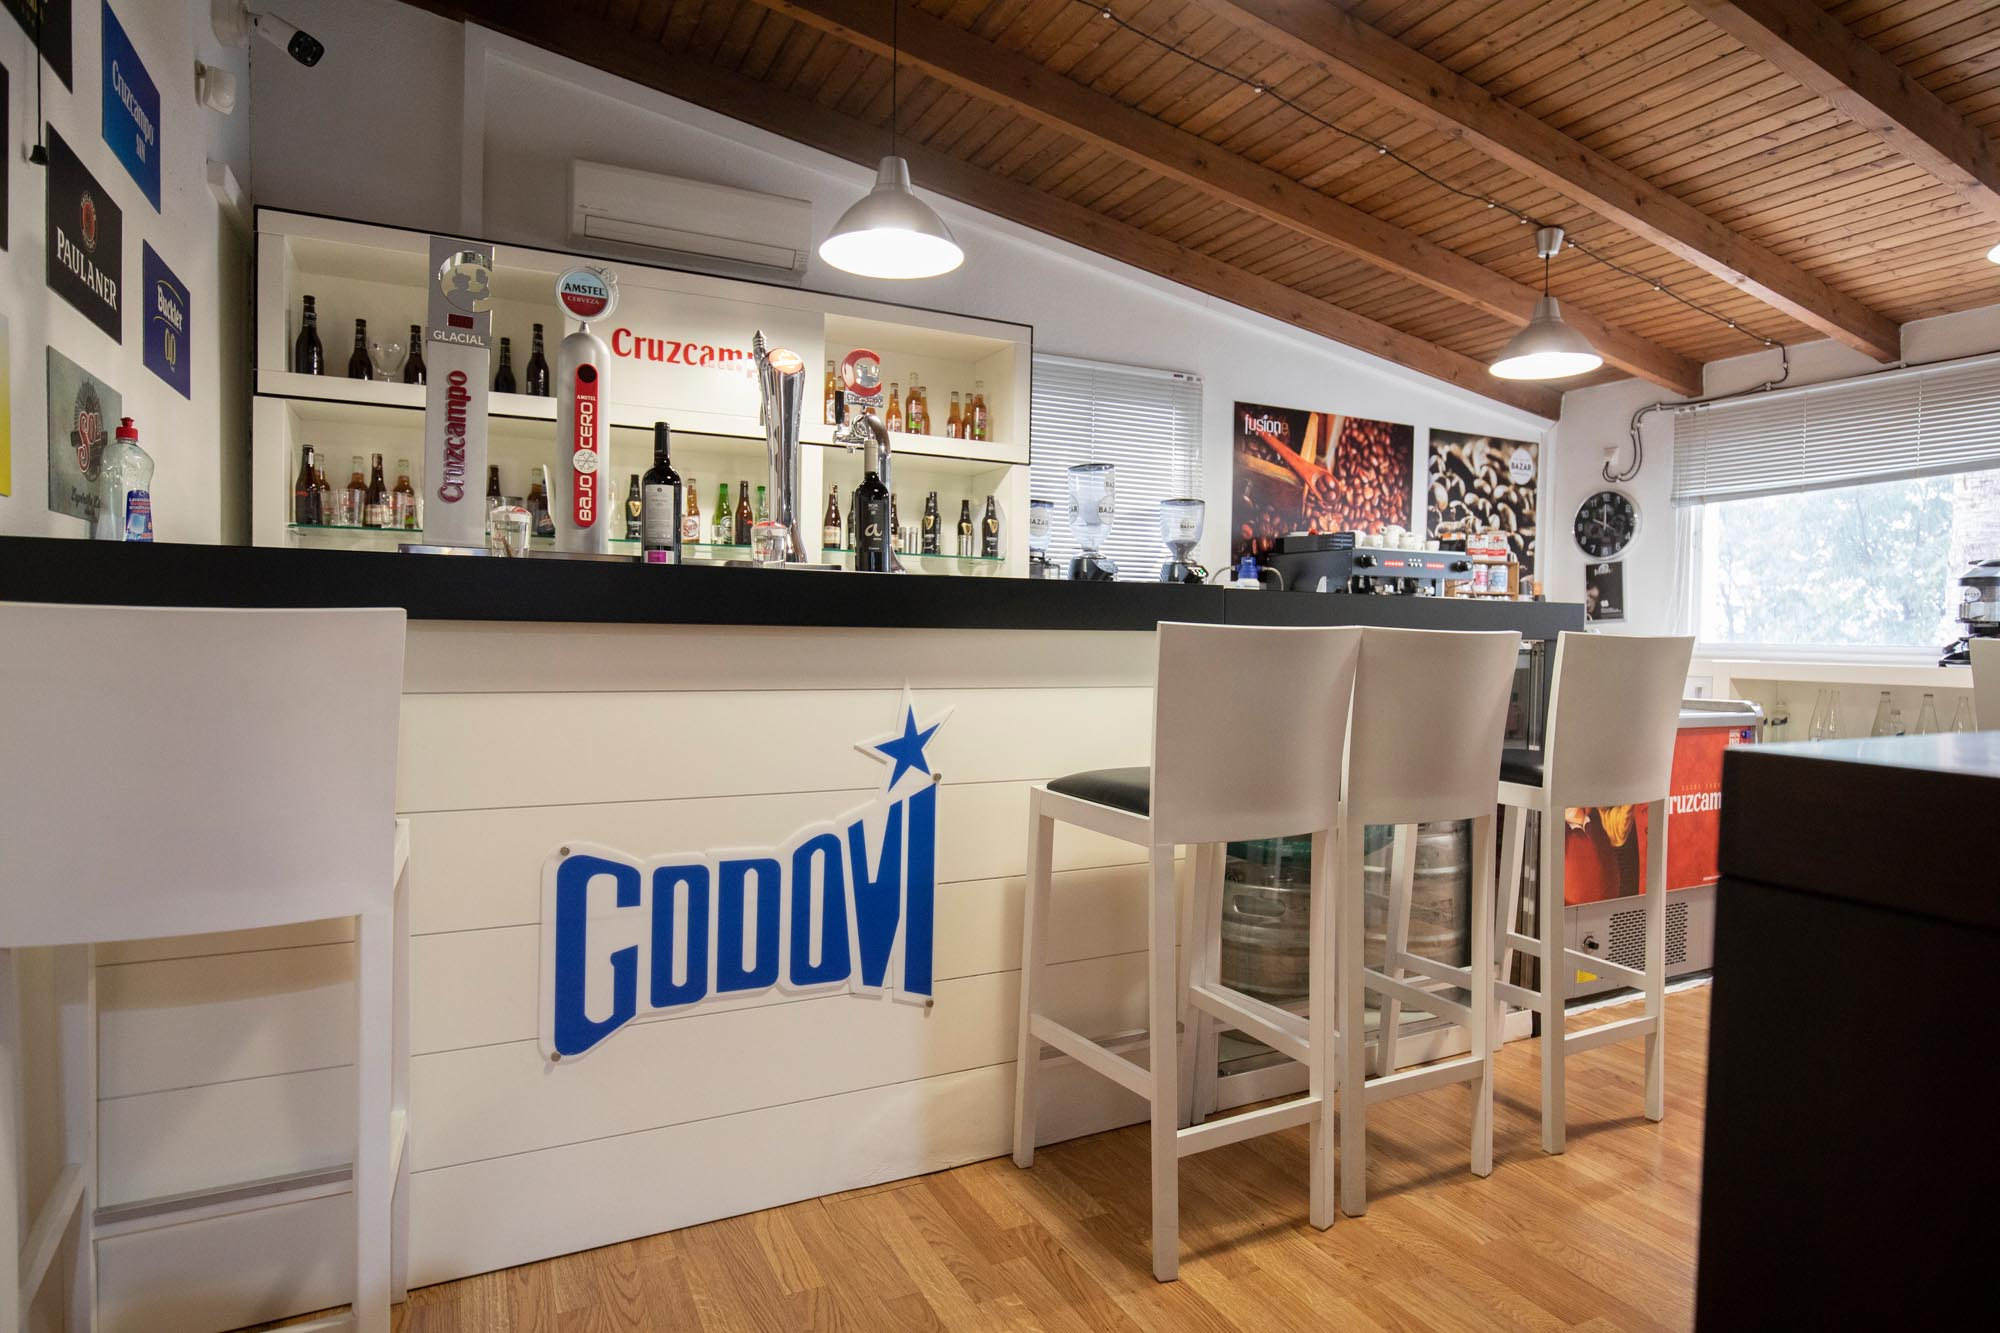 Showroom de Godovi